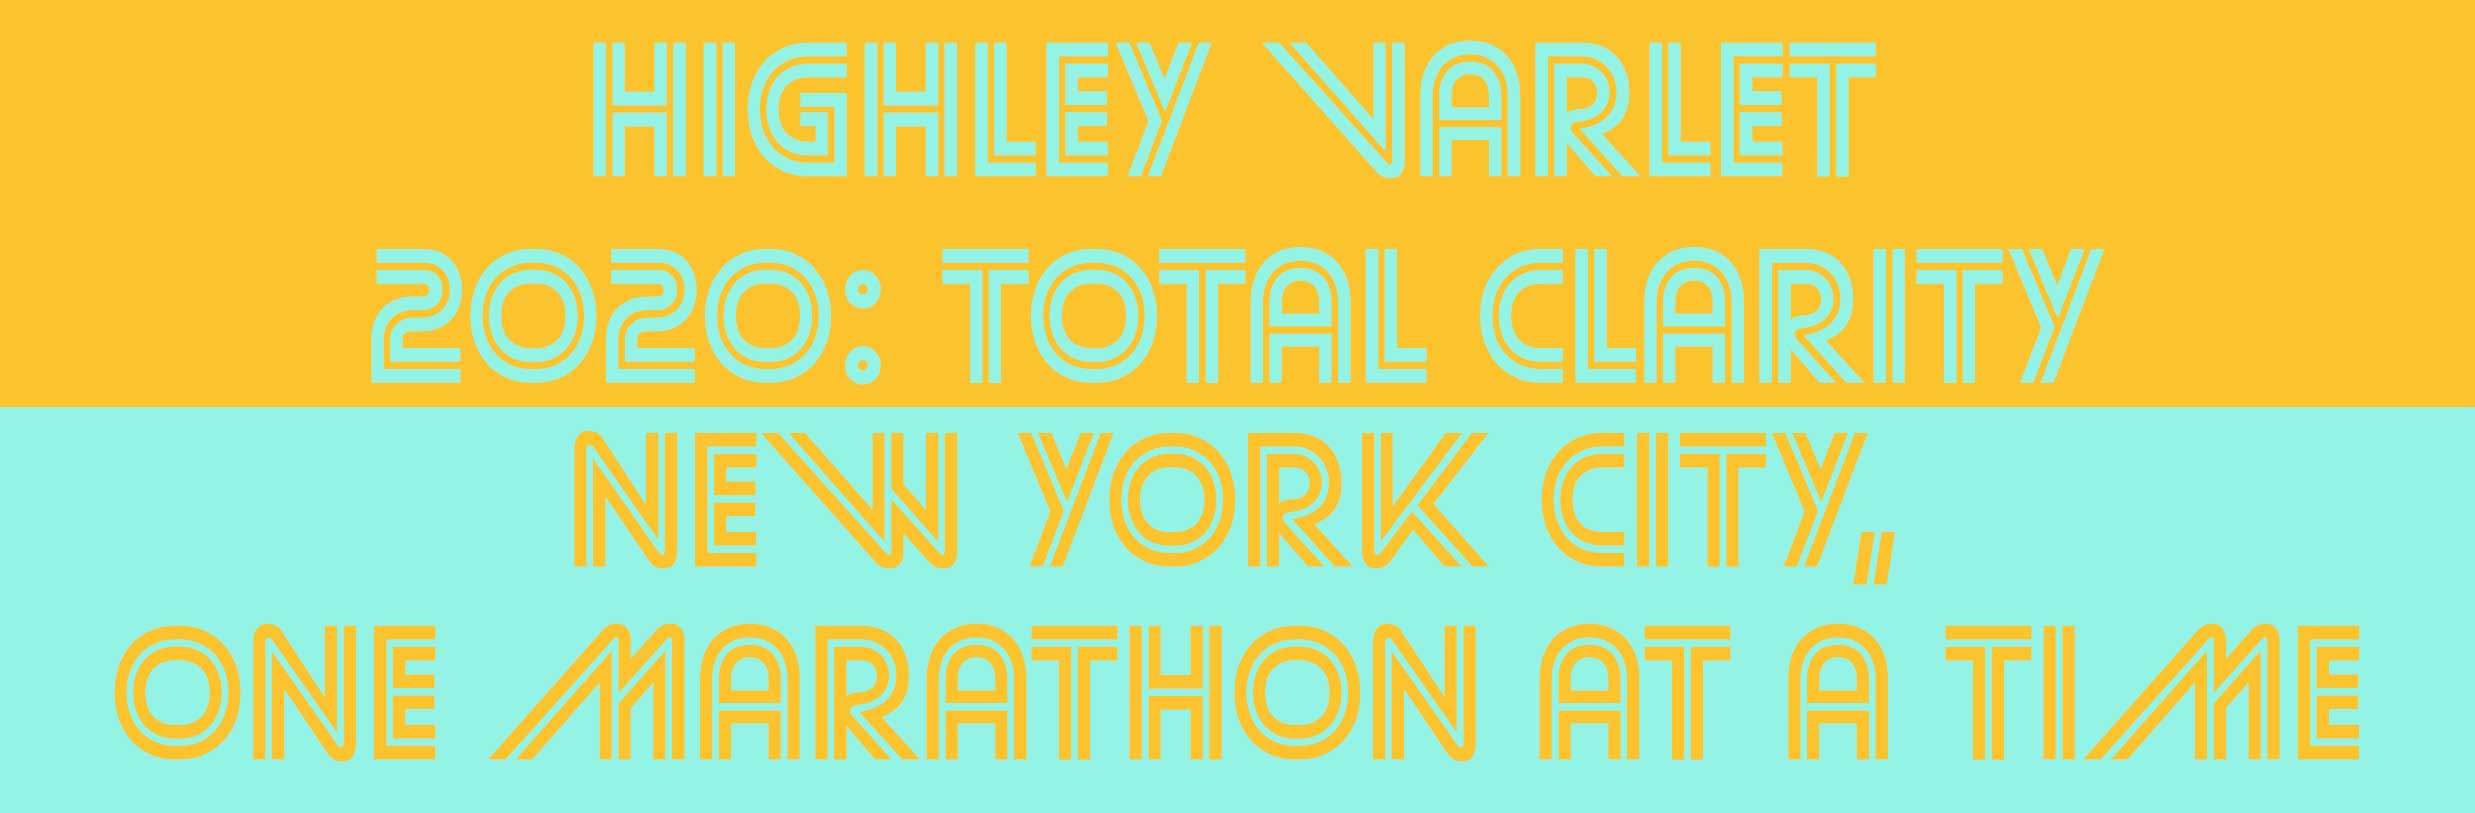 Highley Varlet 2020: Total Clarity - New York City, One Marathon at a Time